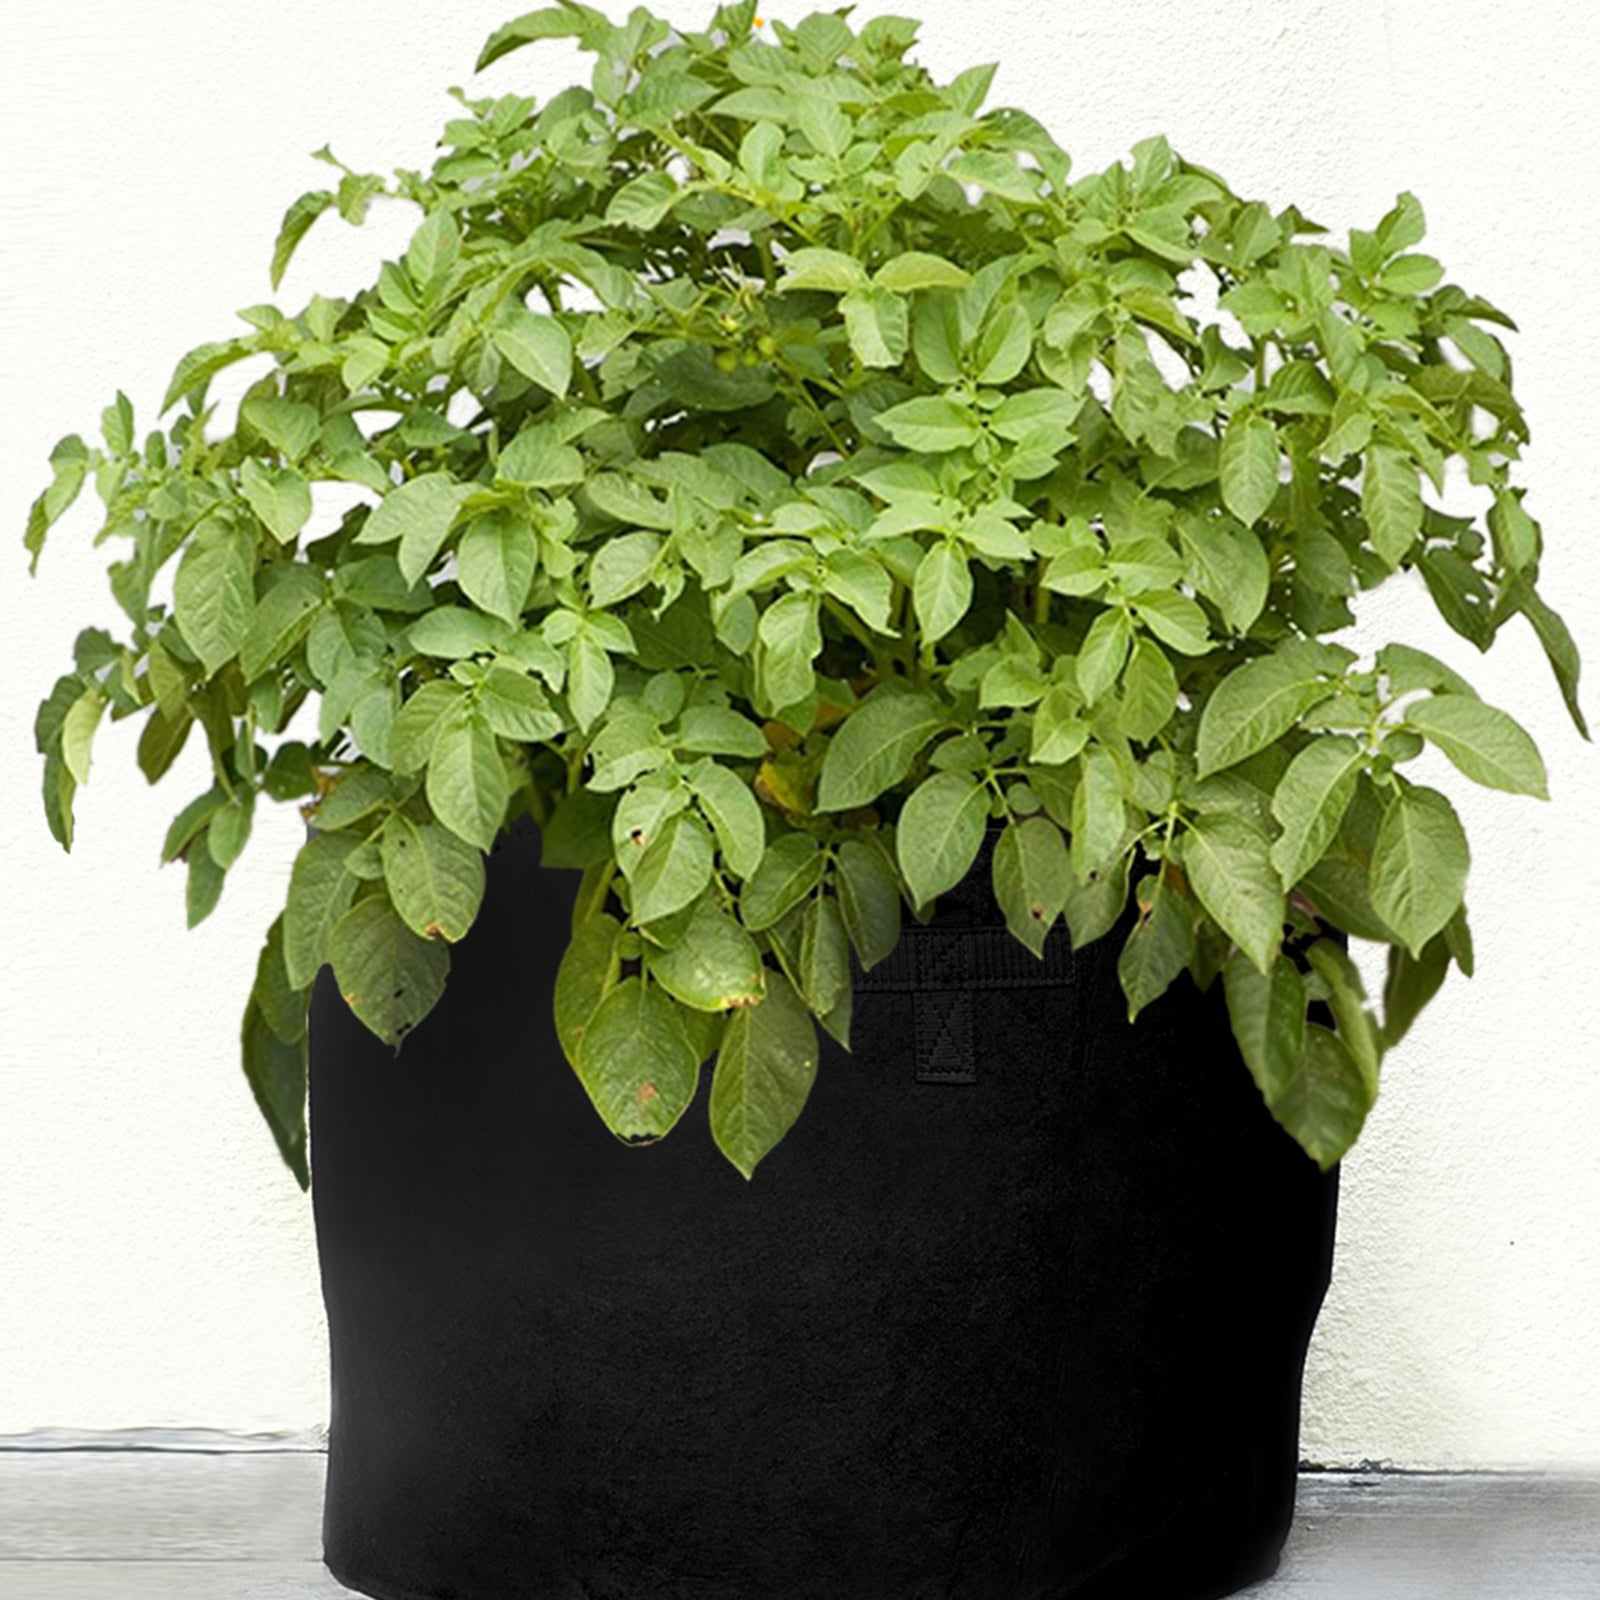 5 Pack Grow Bags Garden Heavy Duty Non-Woven Aeration Plant Fabric Pot Container